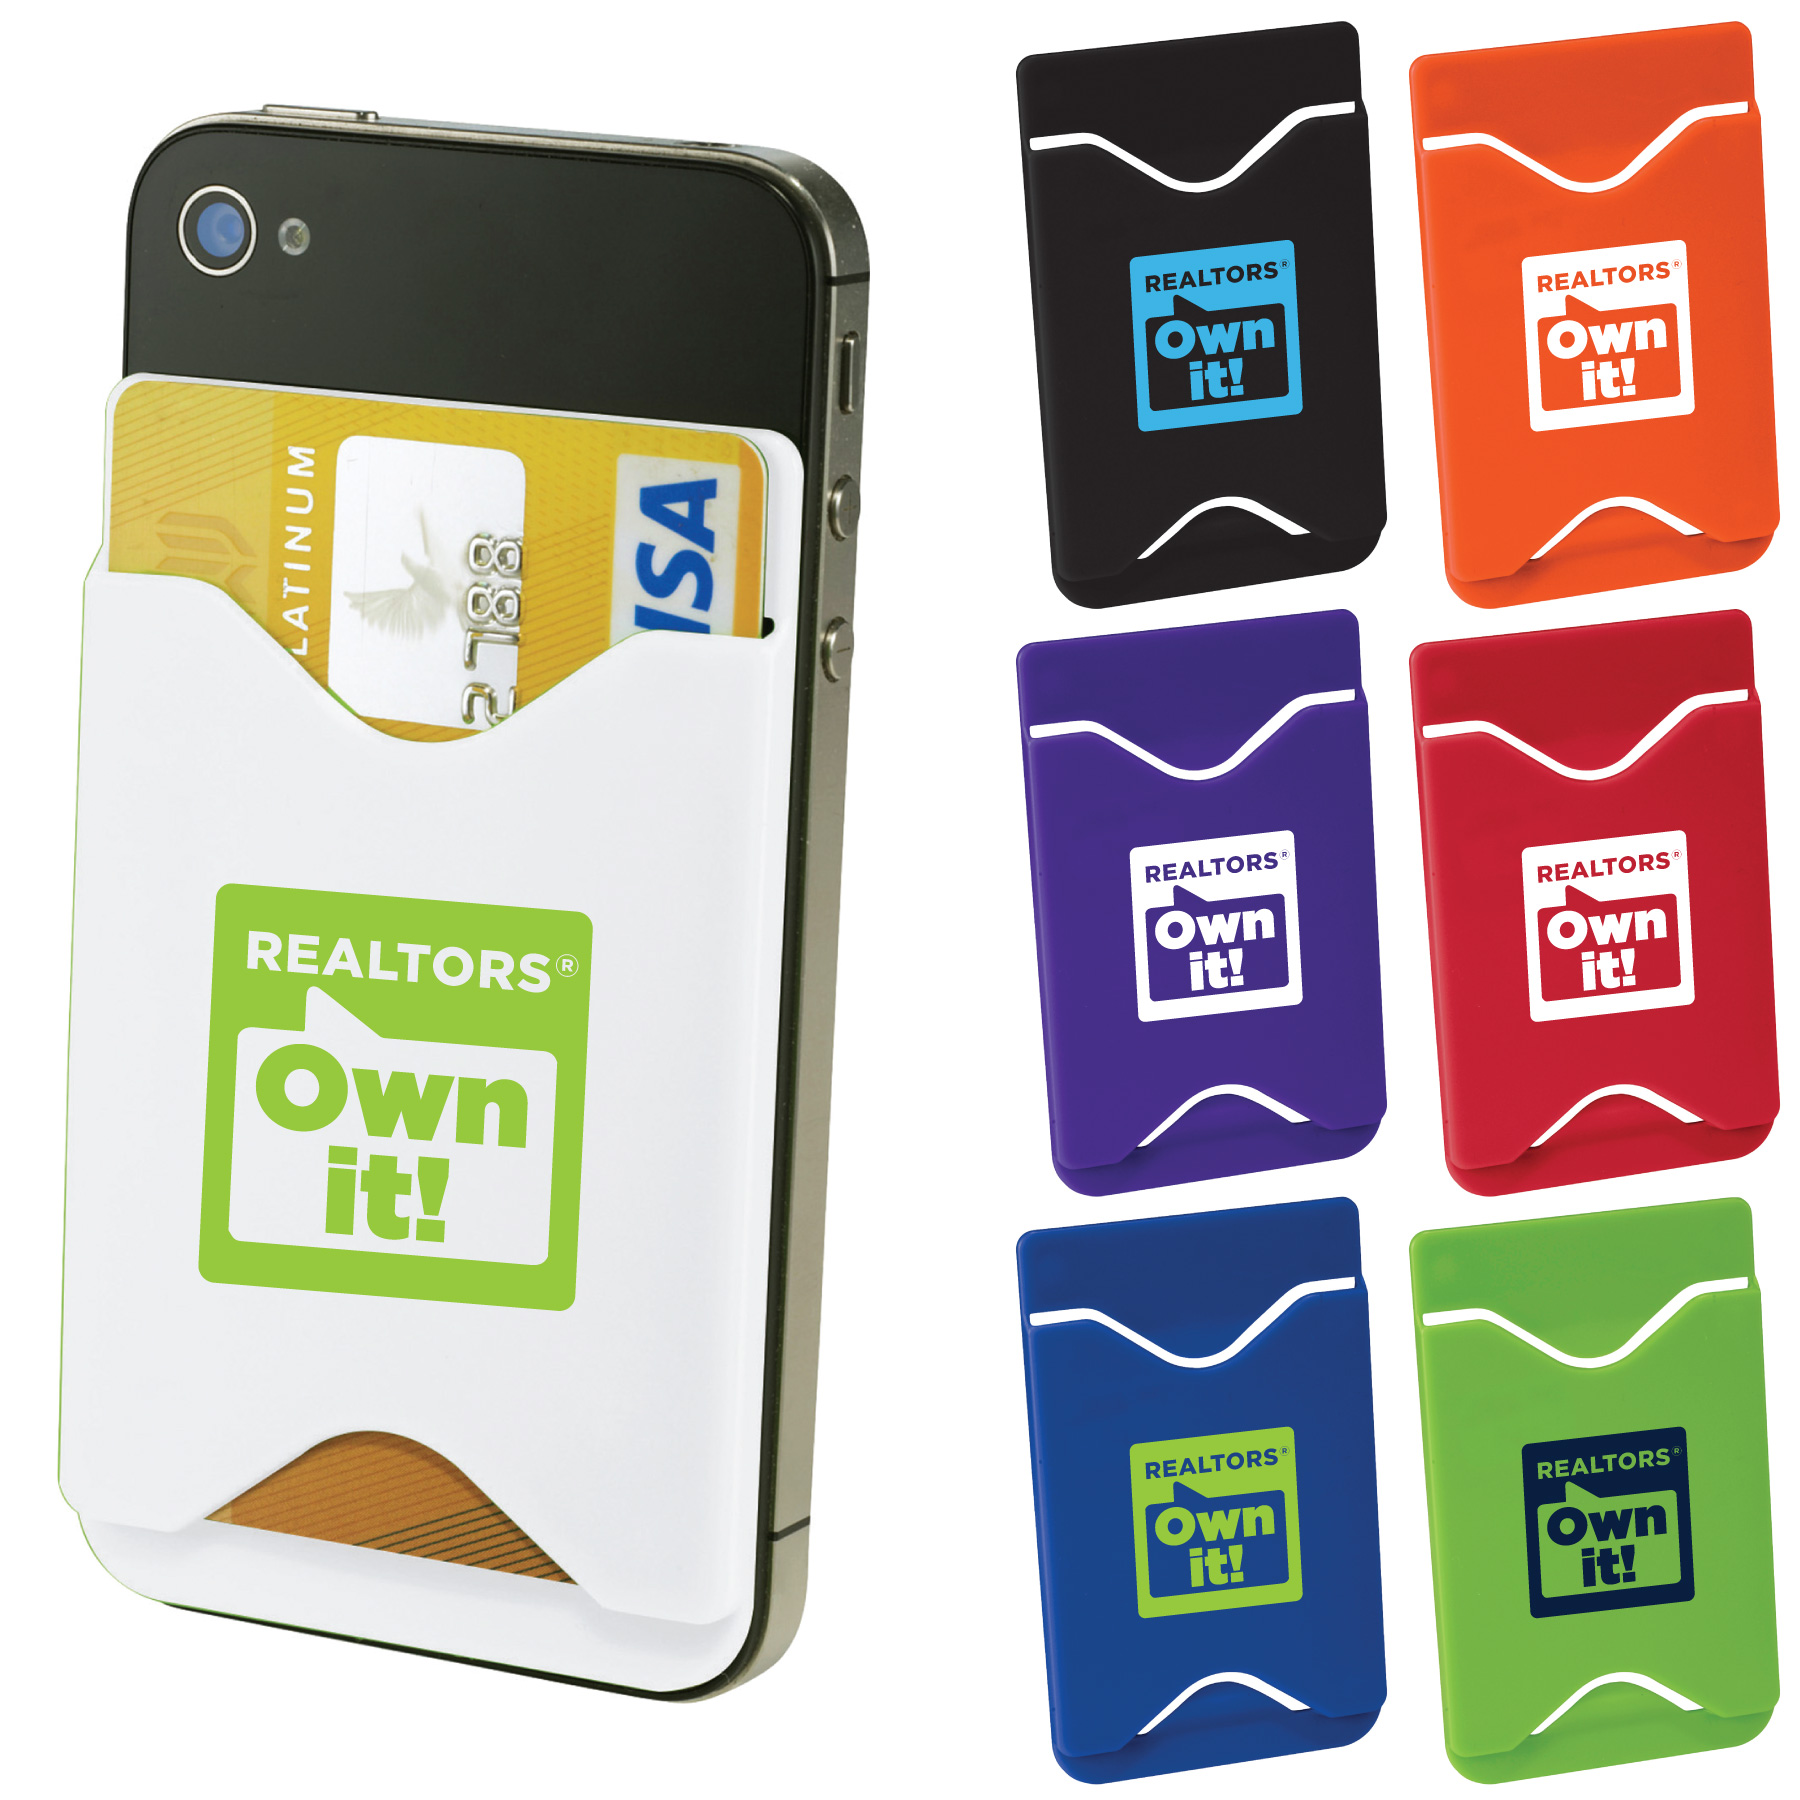 Judd REALTORS® Own It! Cell Phone Card Holder (Special Order) Wallets,Cards,Cells,Phones,Holders,Pockets,Silicones,Plastic,Rubber,Holders